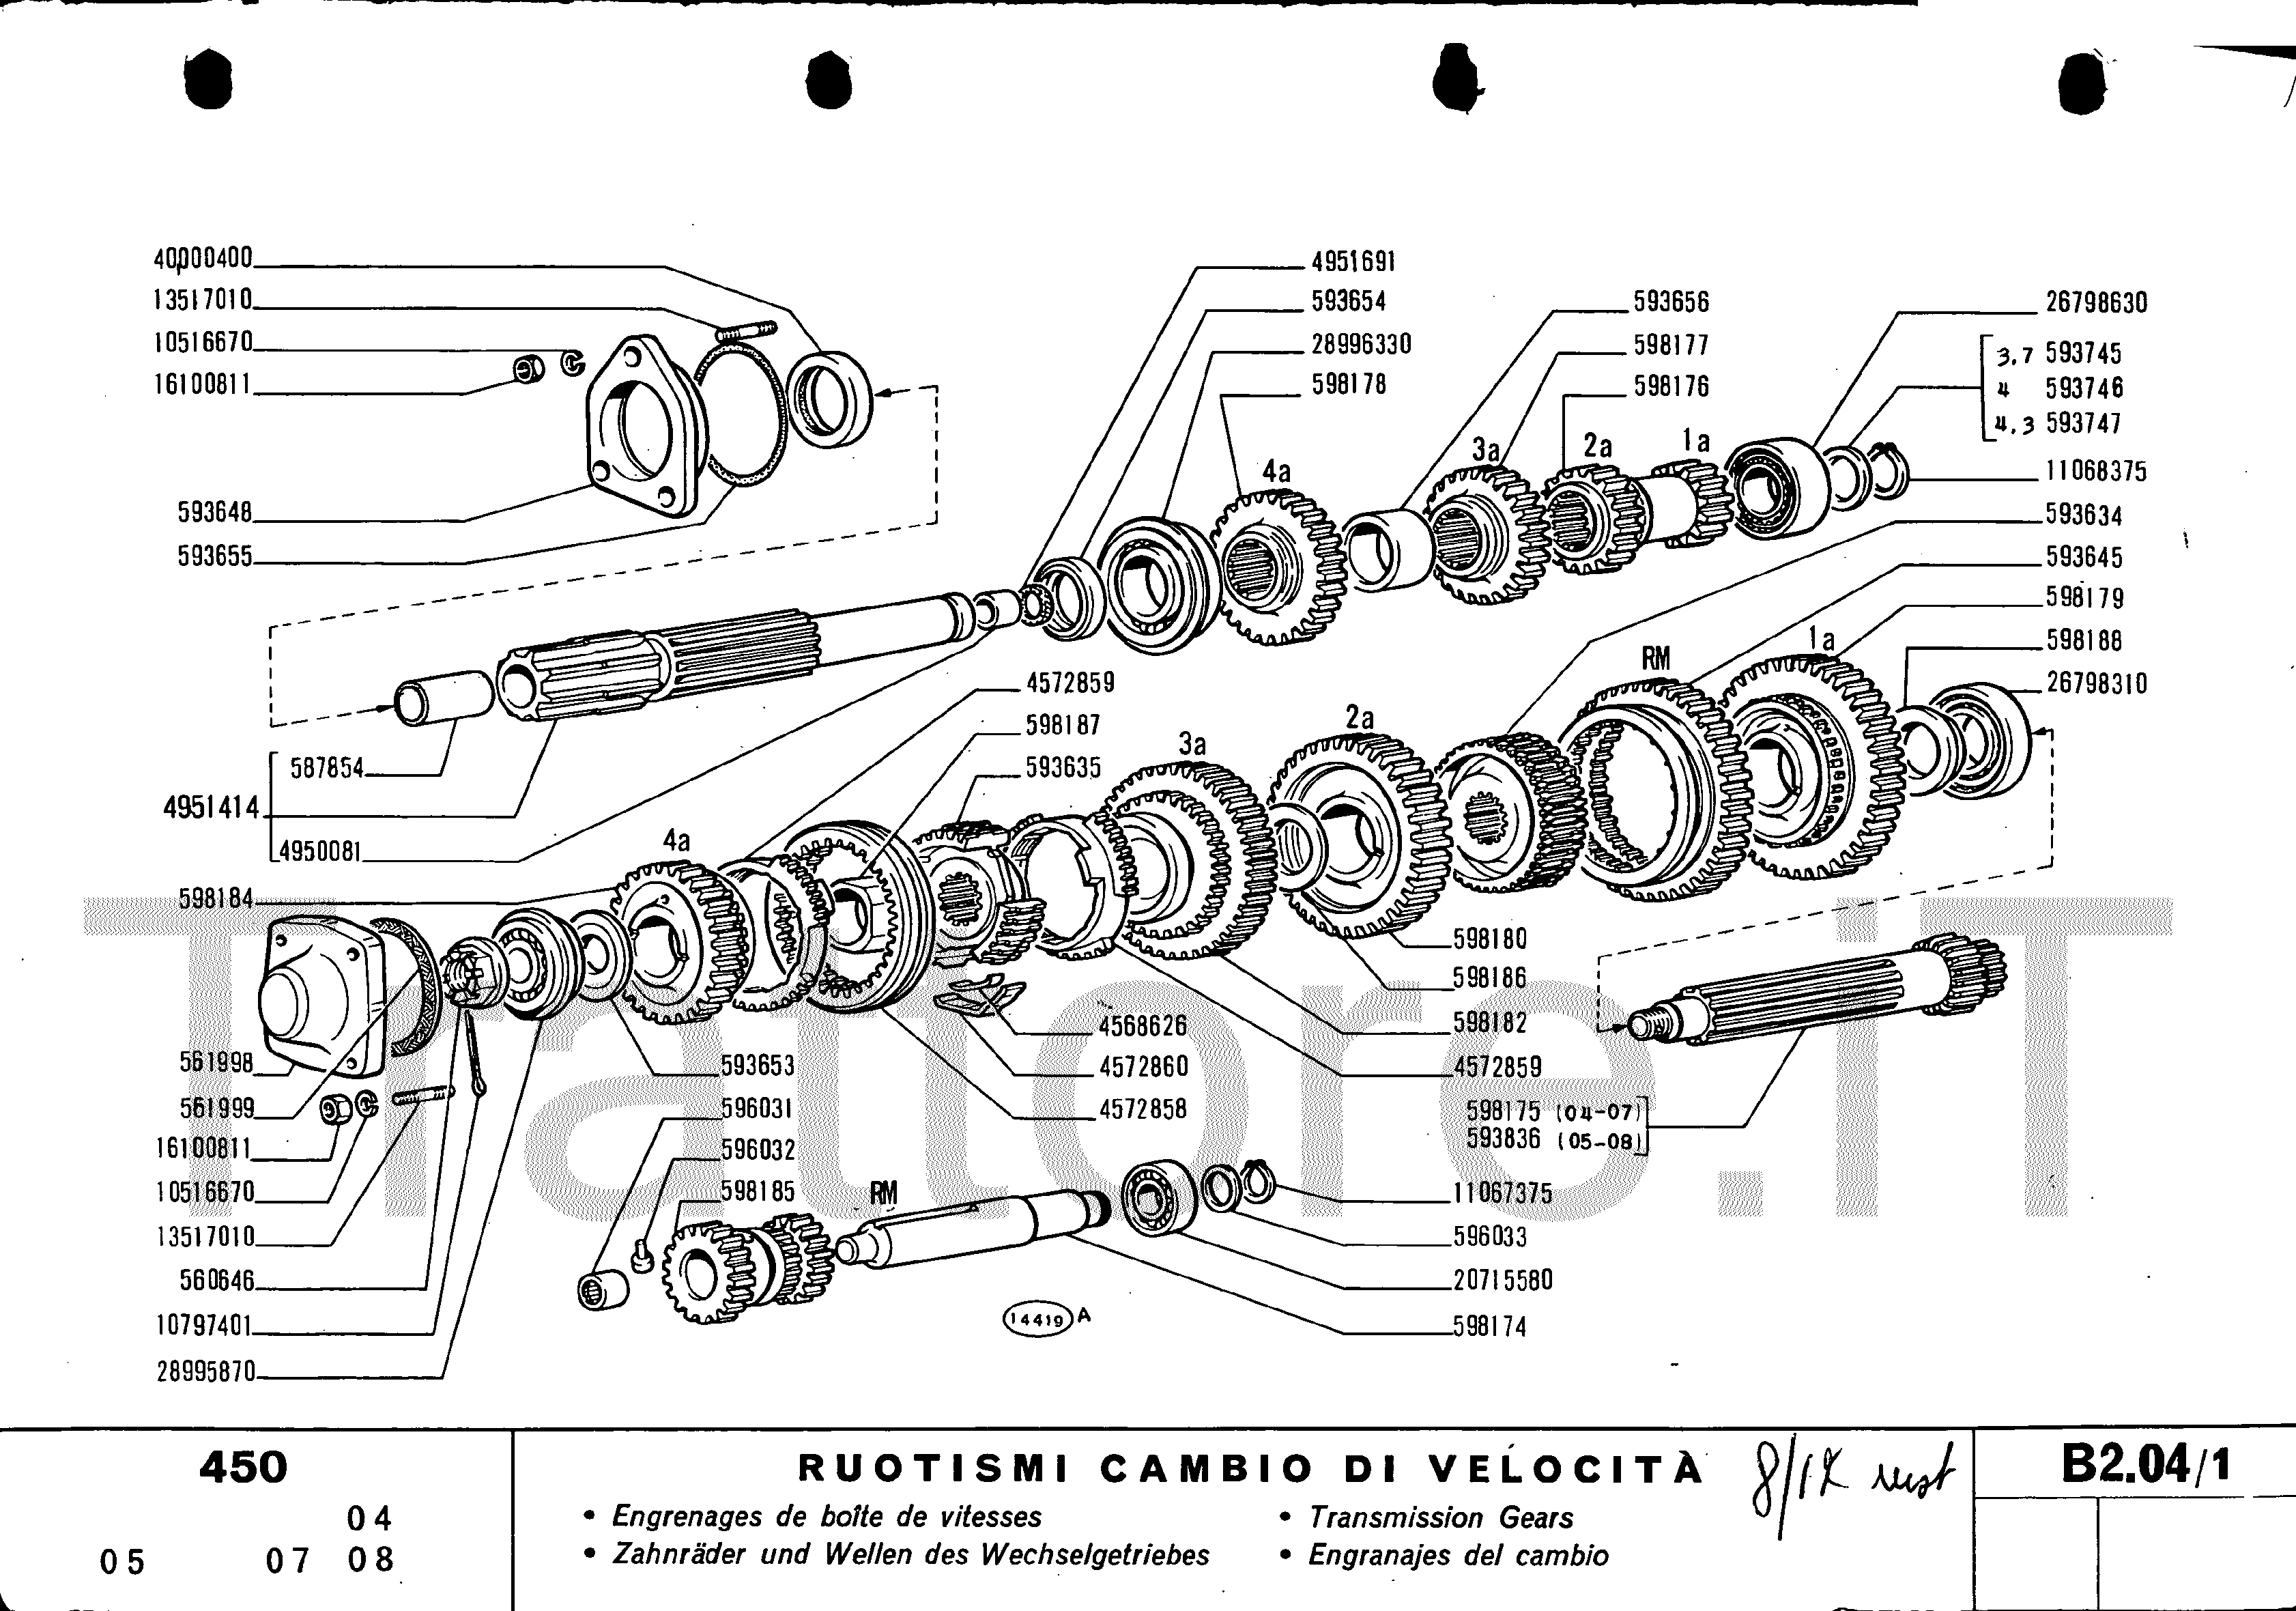 2012 Fiat 500 Wiring Diagram on 1998 Mazda Protege Wiring Diagram